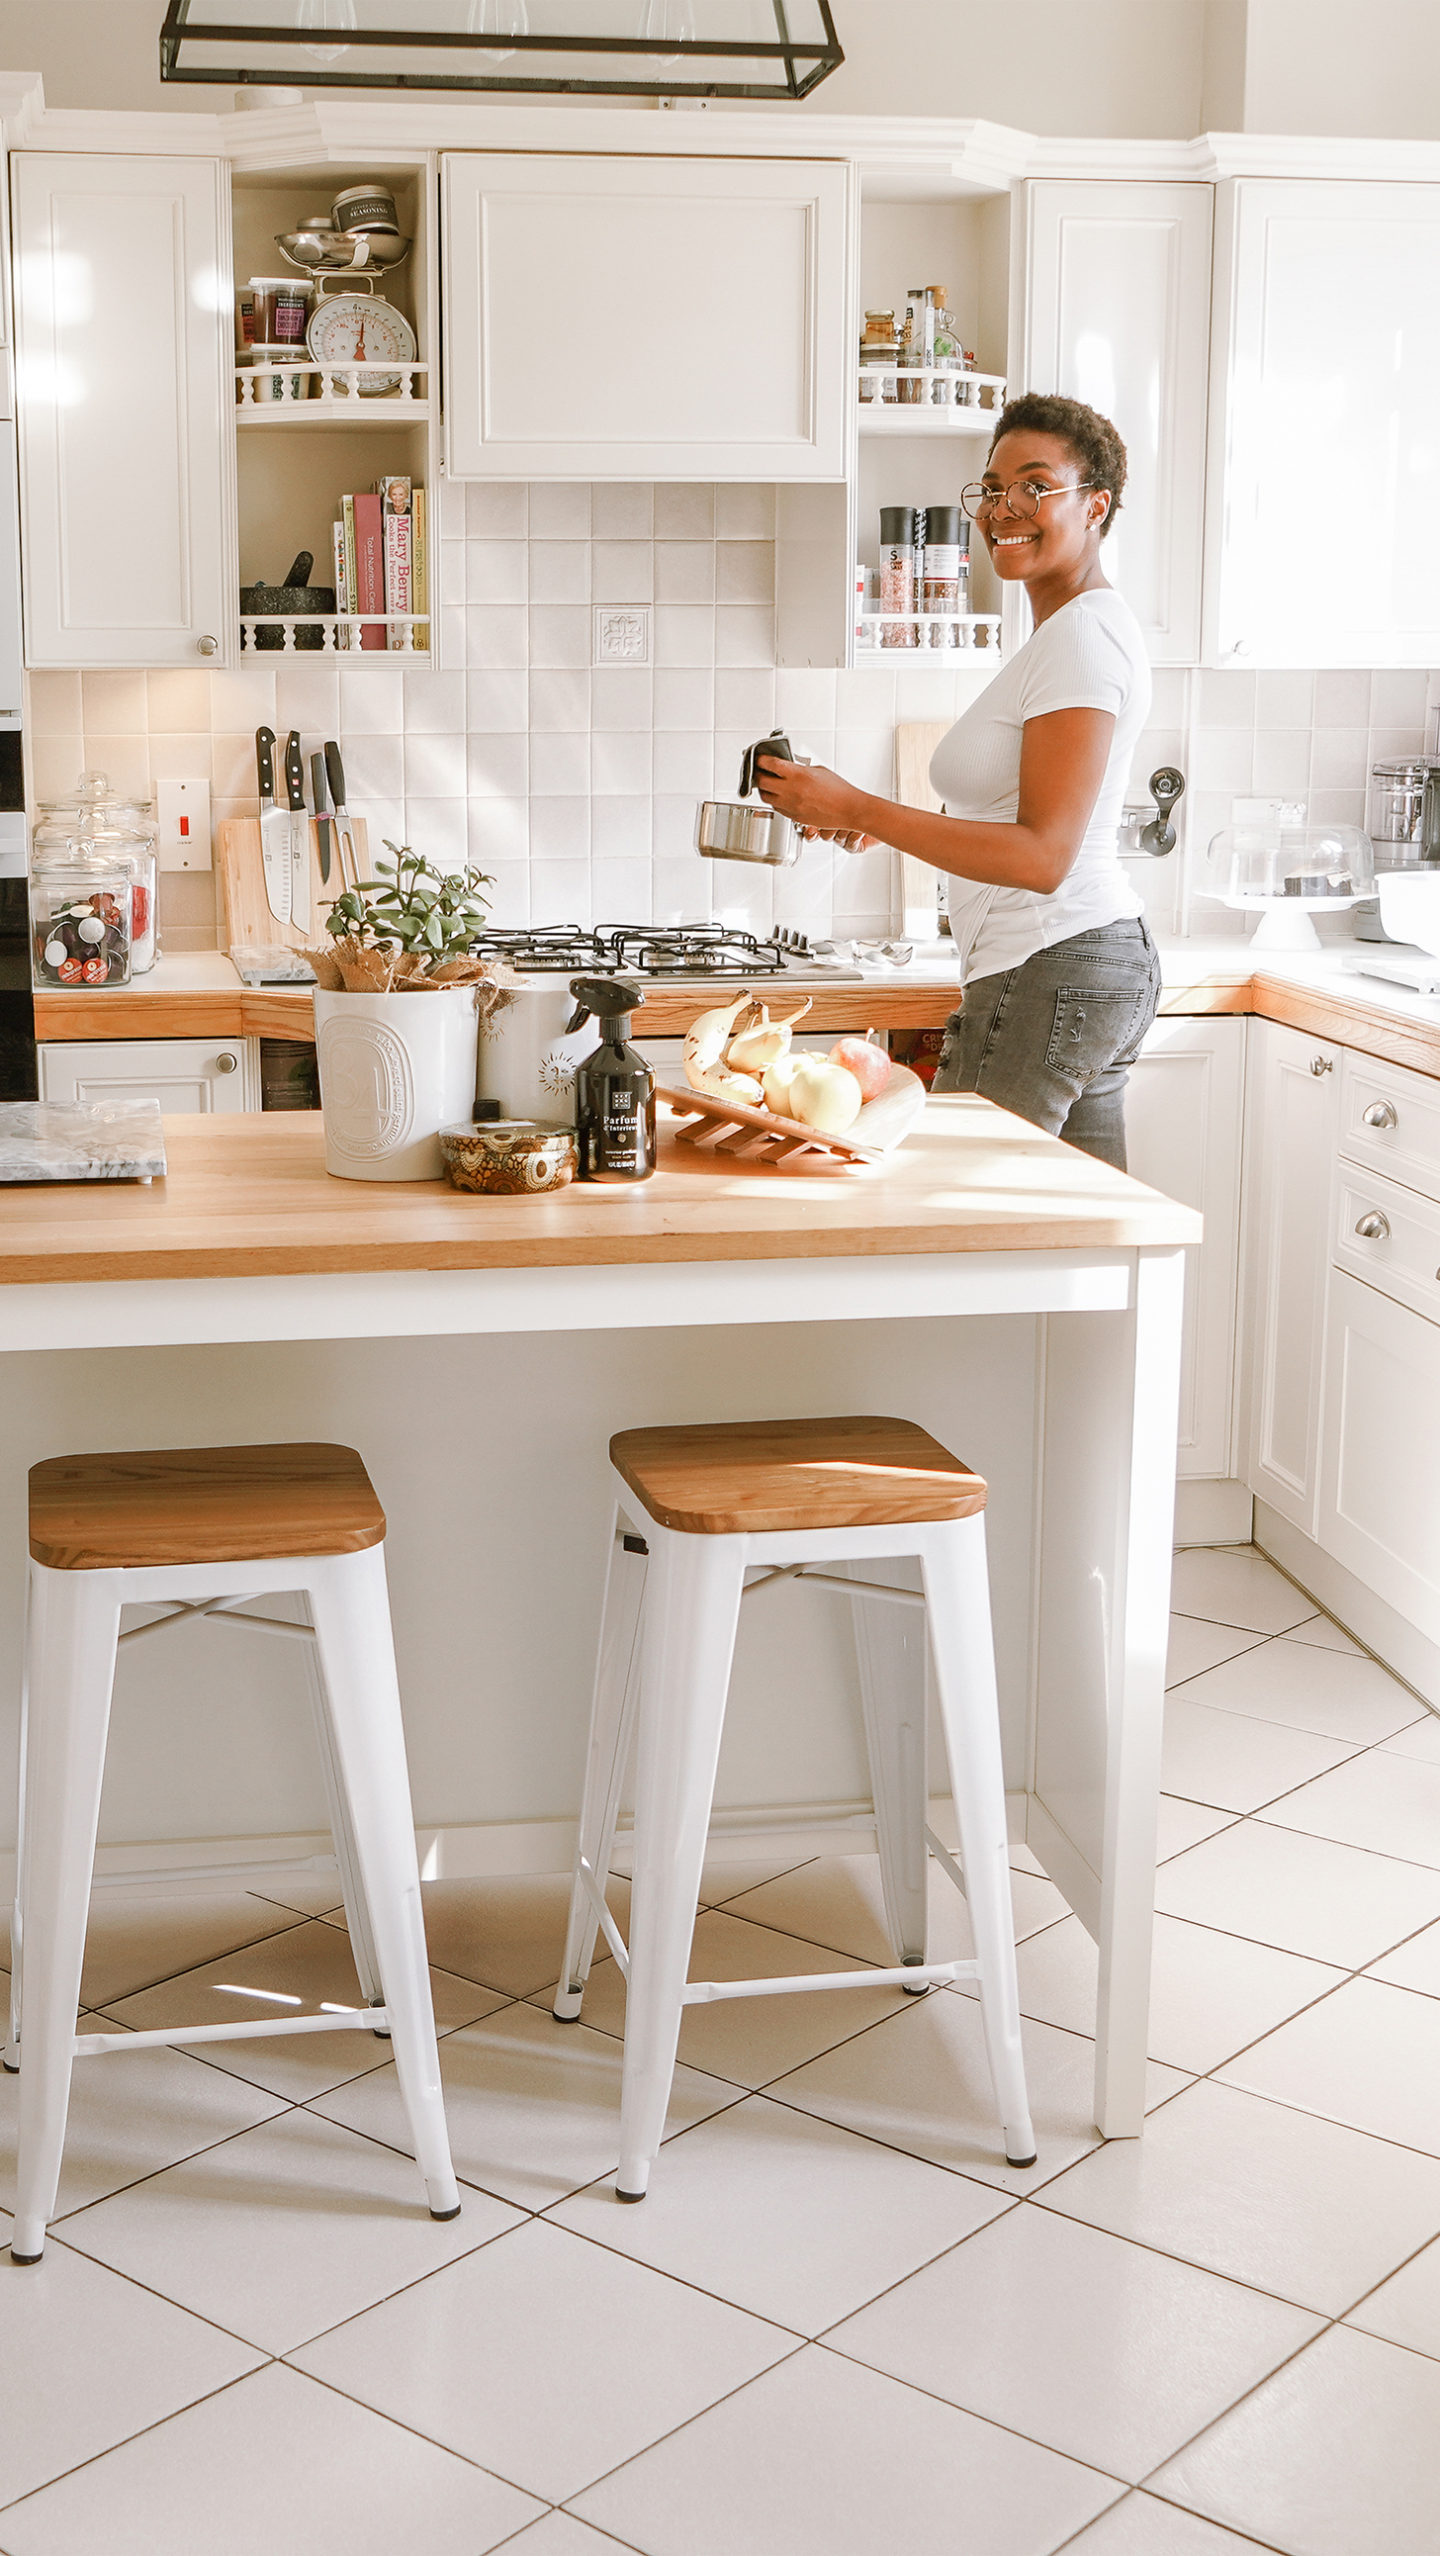 Keeping a Tidy and Clean Home